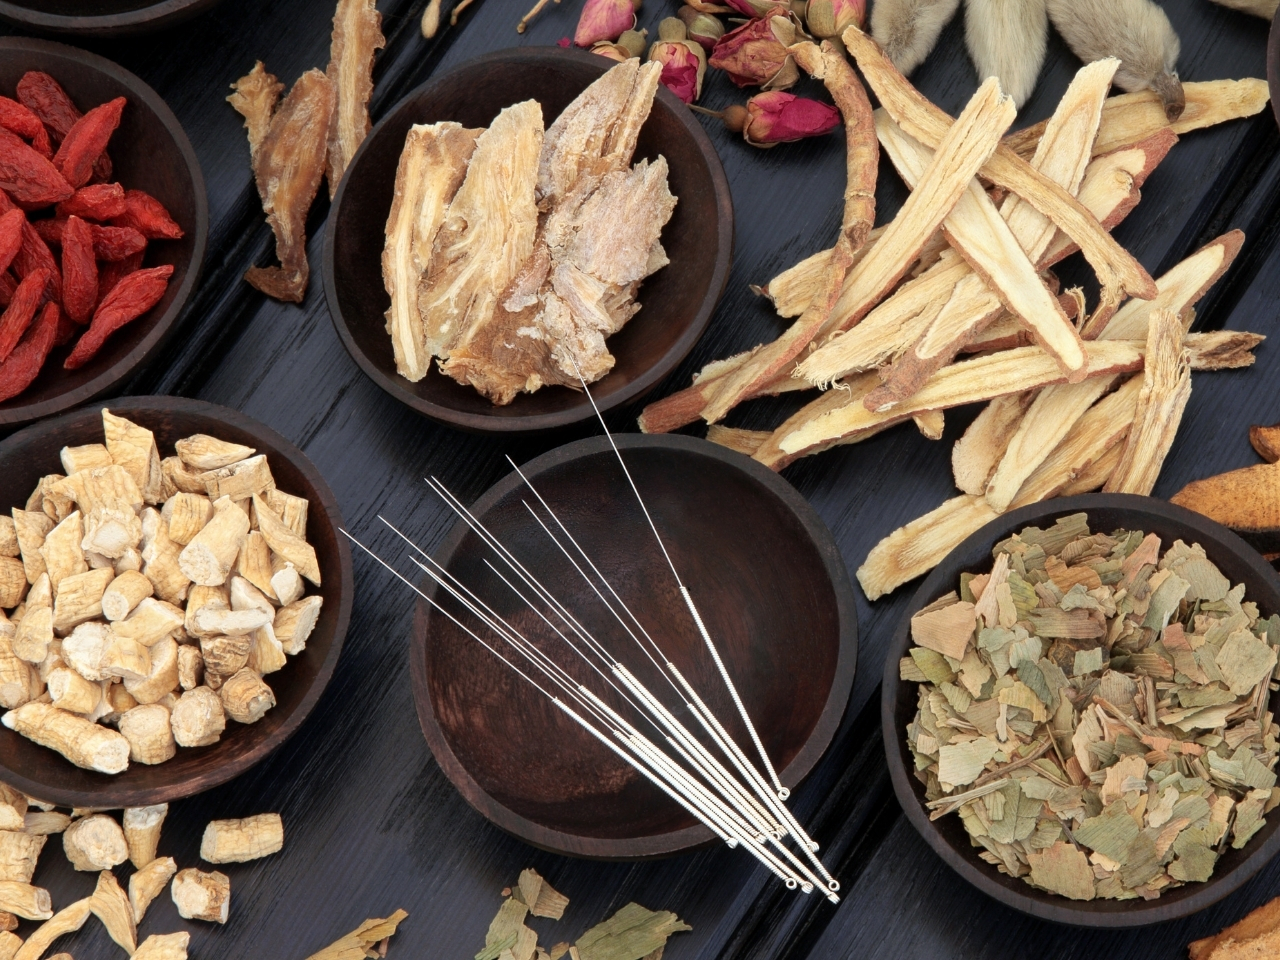 acupuncture needles and traditional chinese medicine herbs